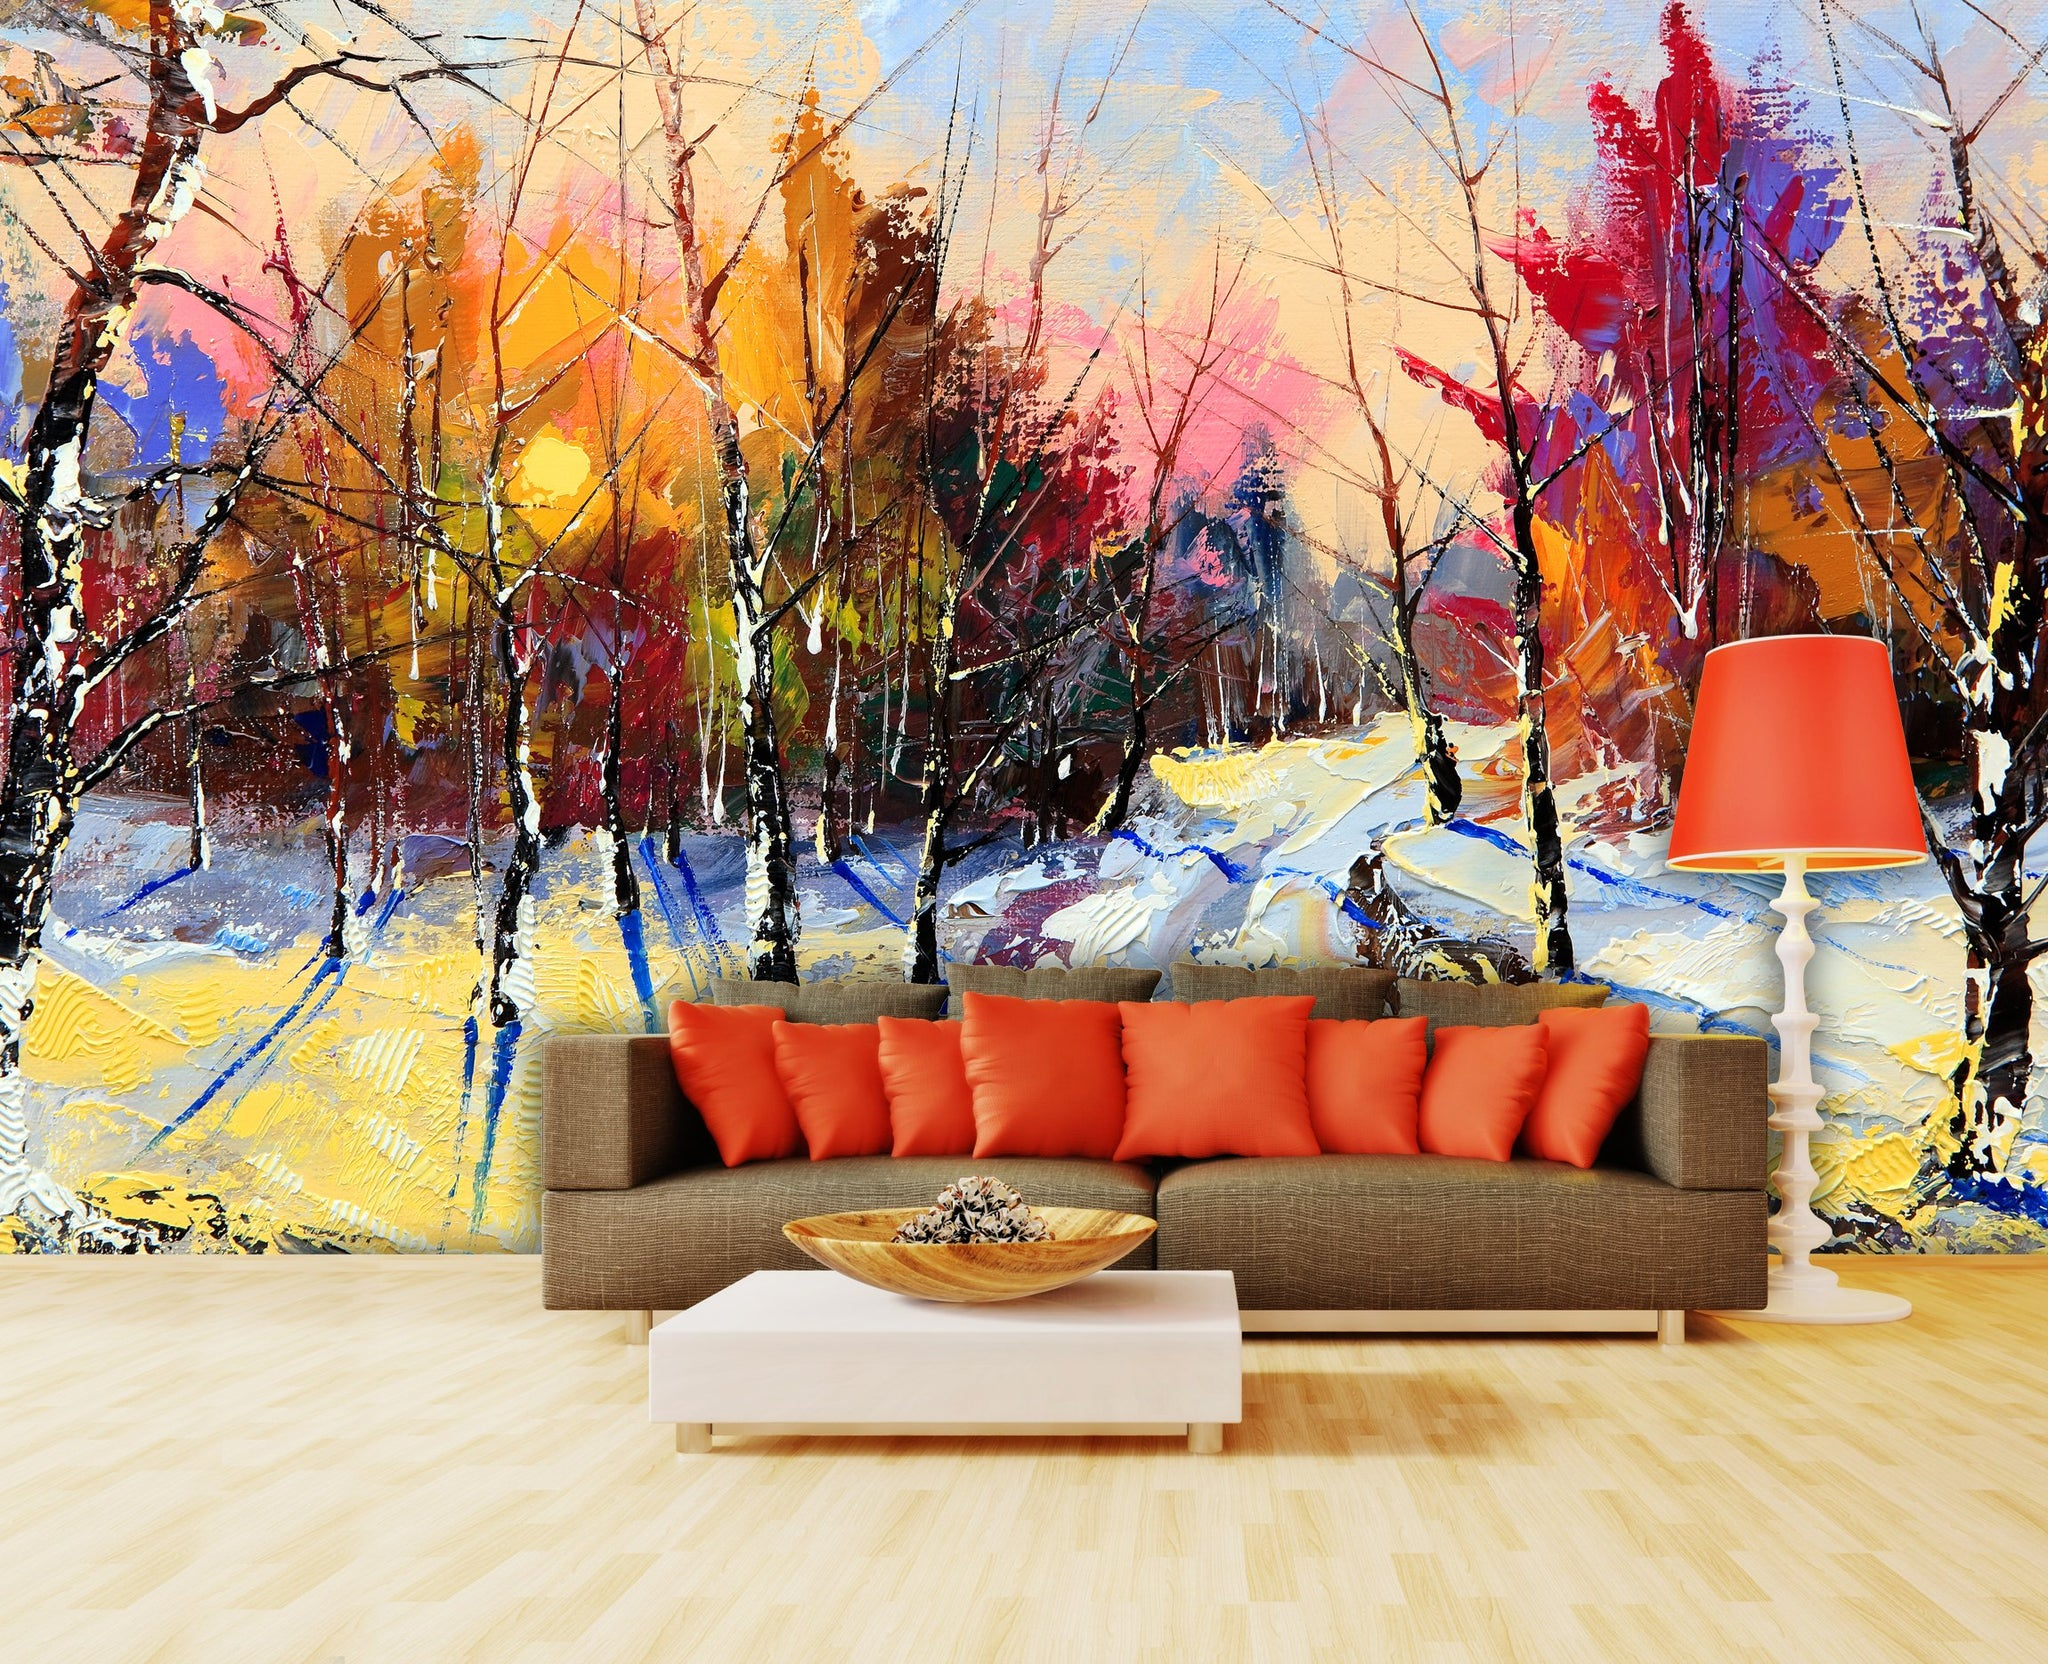 Wallpaper Sunset in winter wood SW189